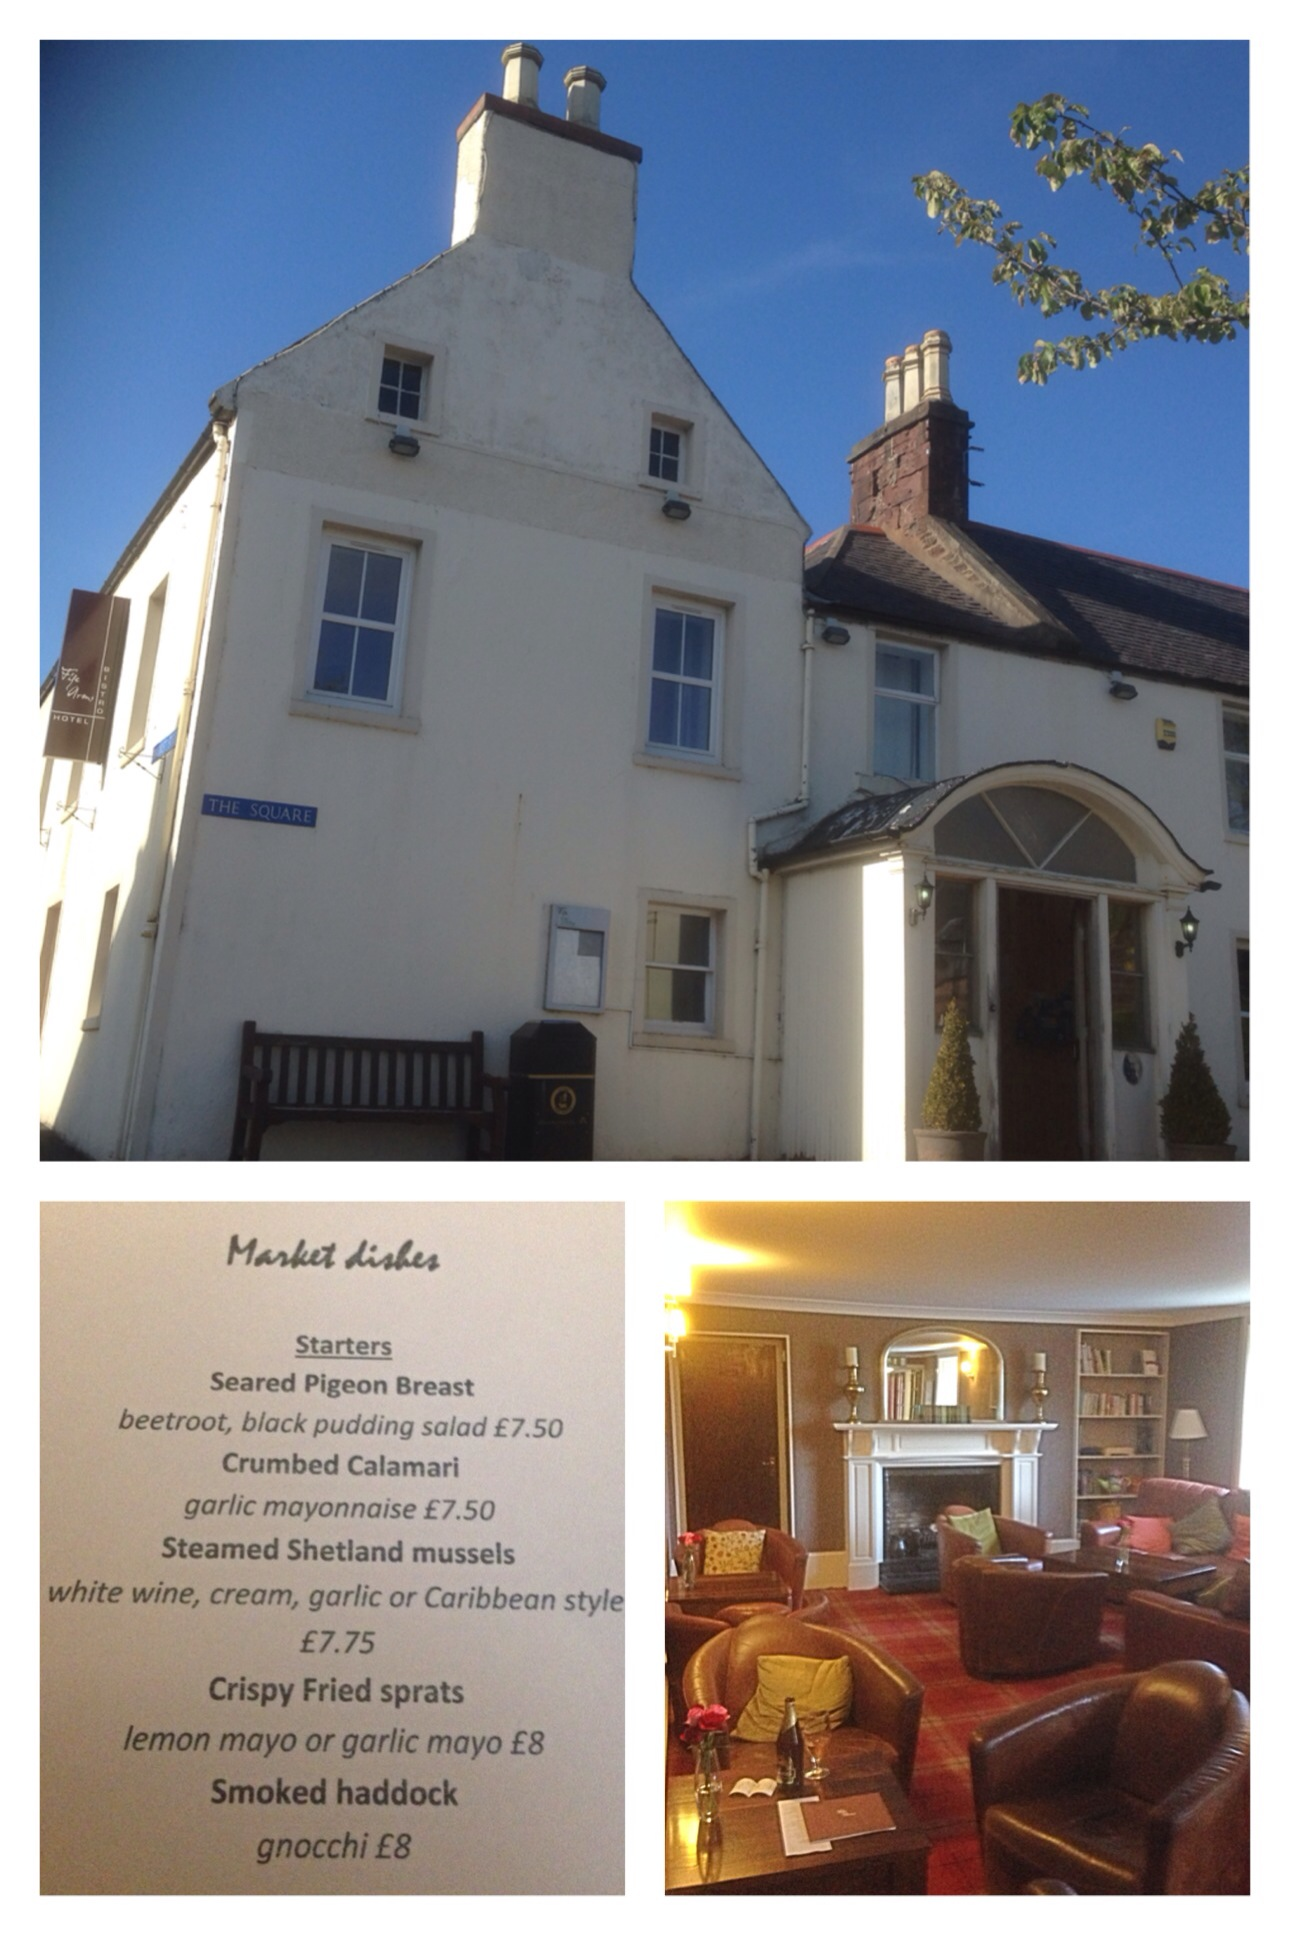 Fife Arms hotel, Turriff, Aberdeenshire